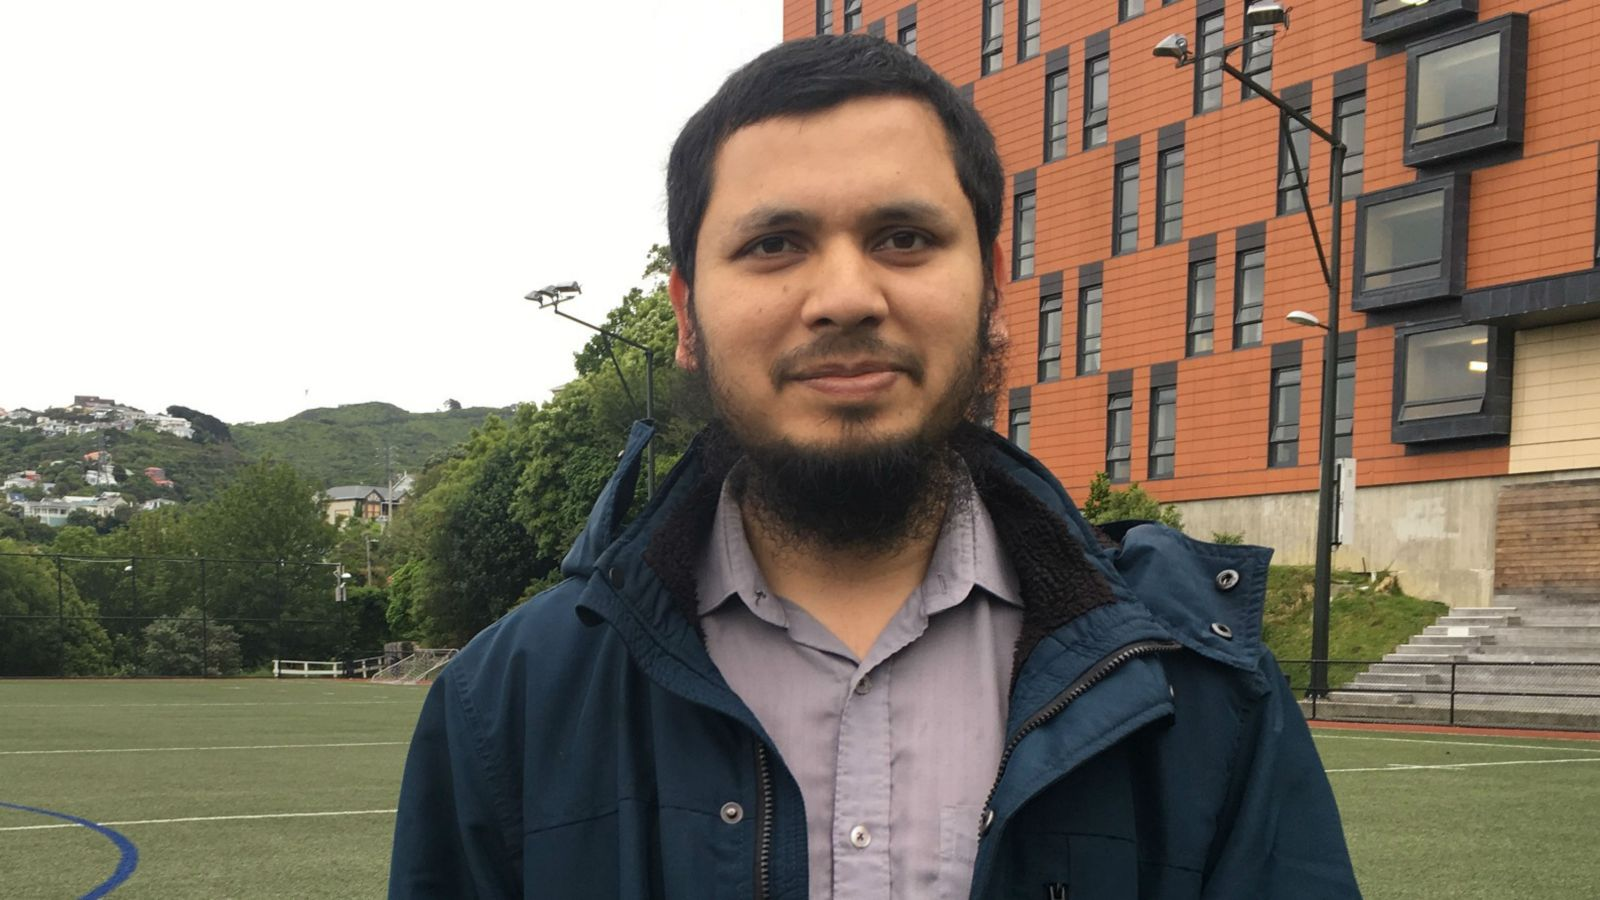 Arif stands in the middle of a sports field, with rolling hills and an orange building behind him.